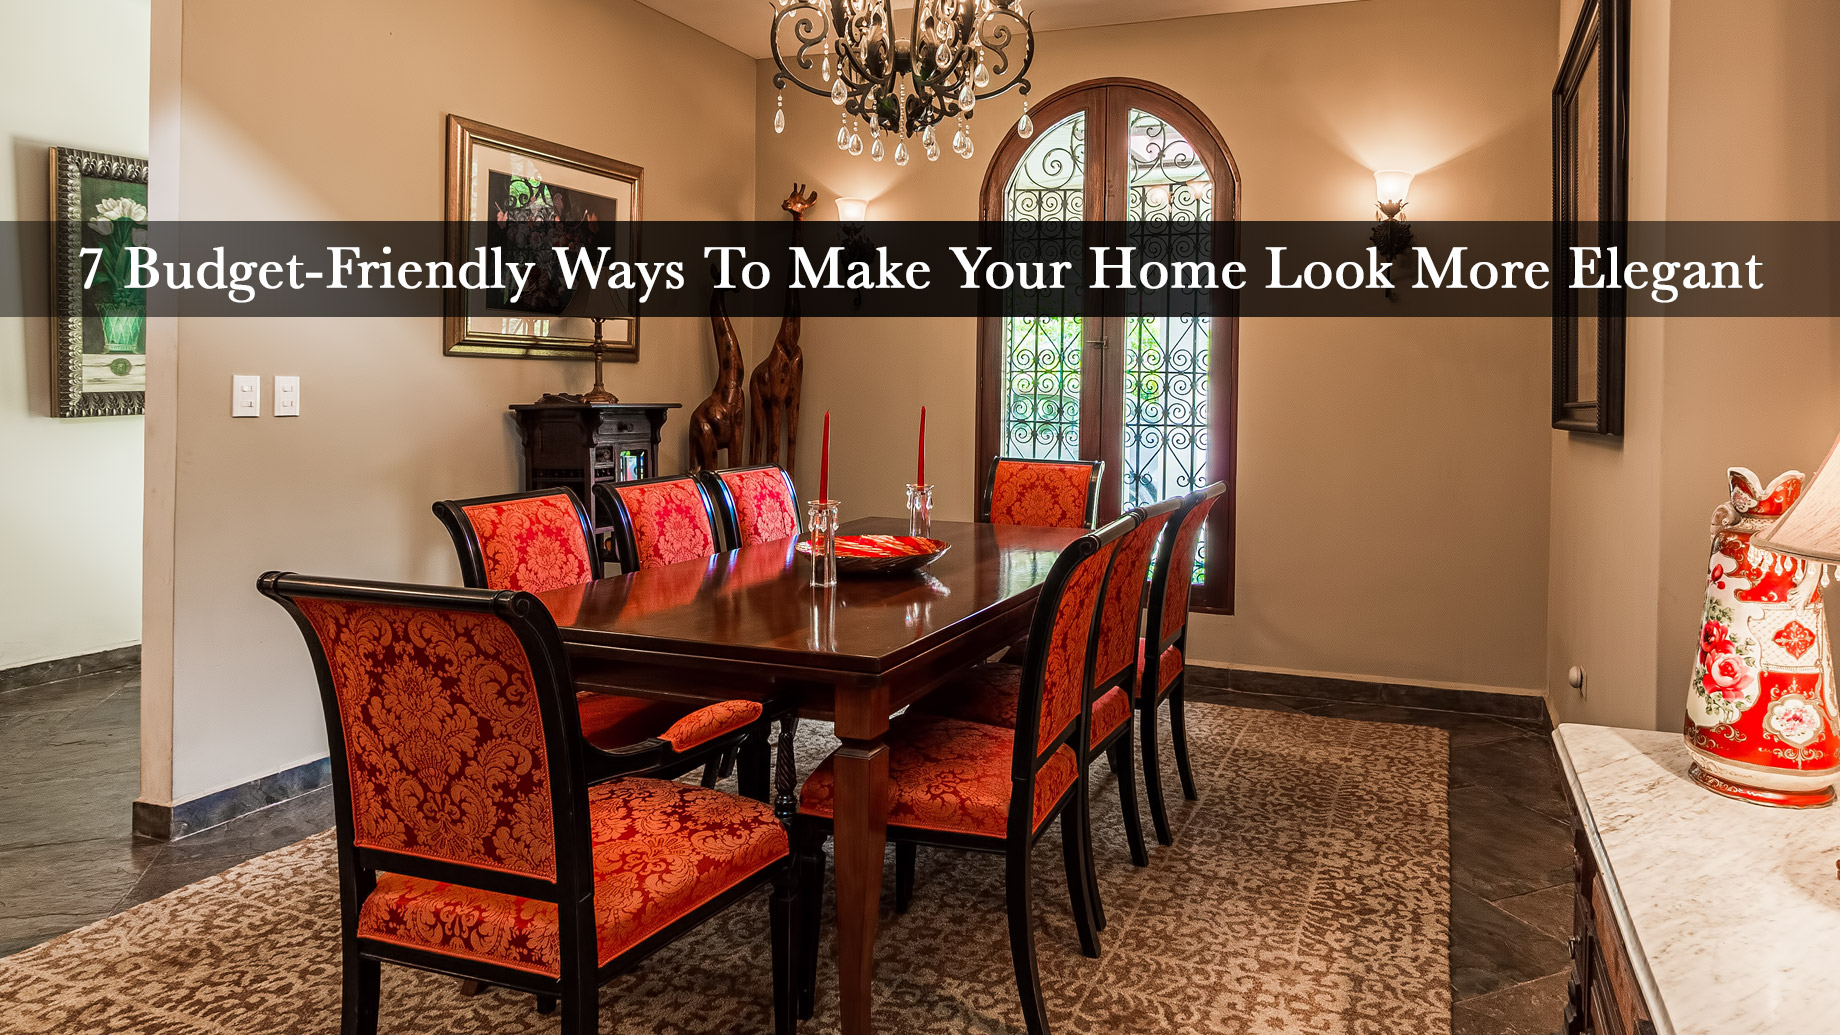 7 Budget-Friendly Ways To Make Your Home Look More Elegant